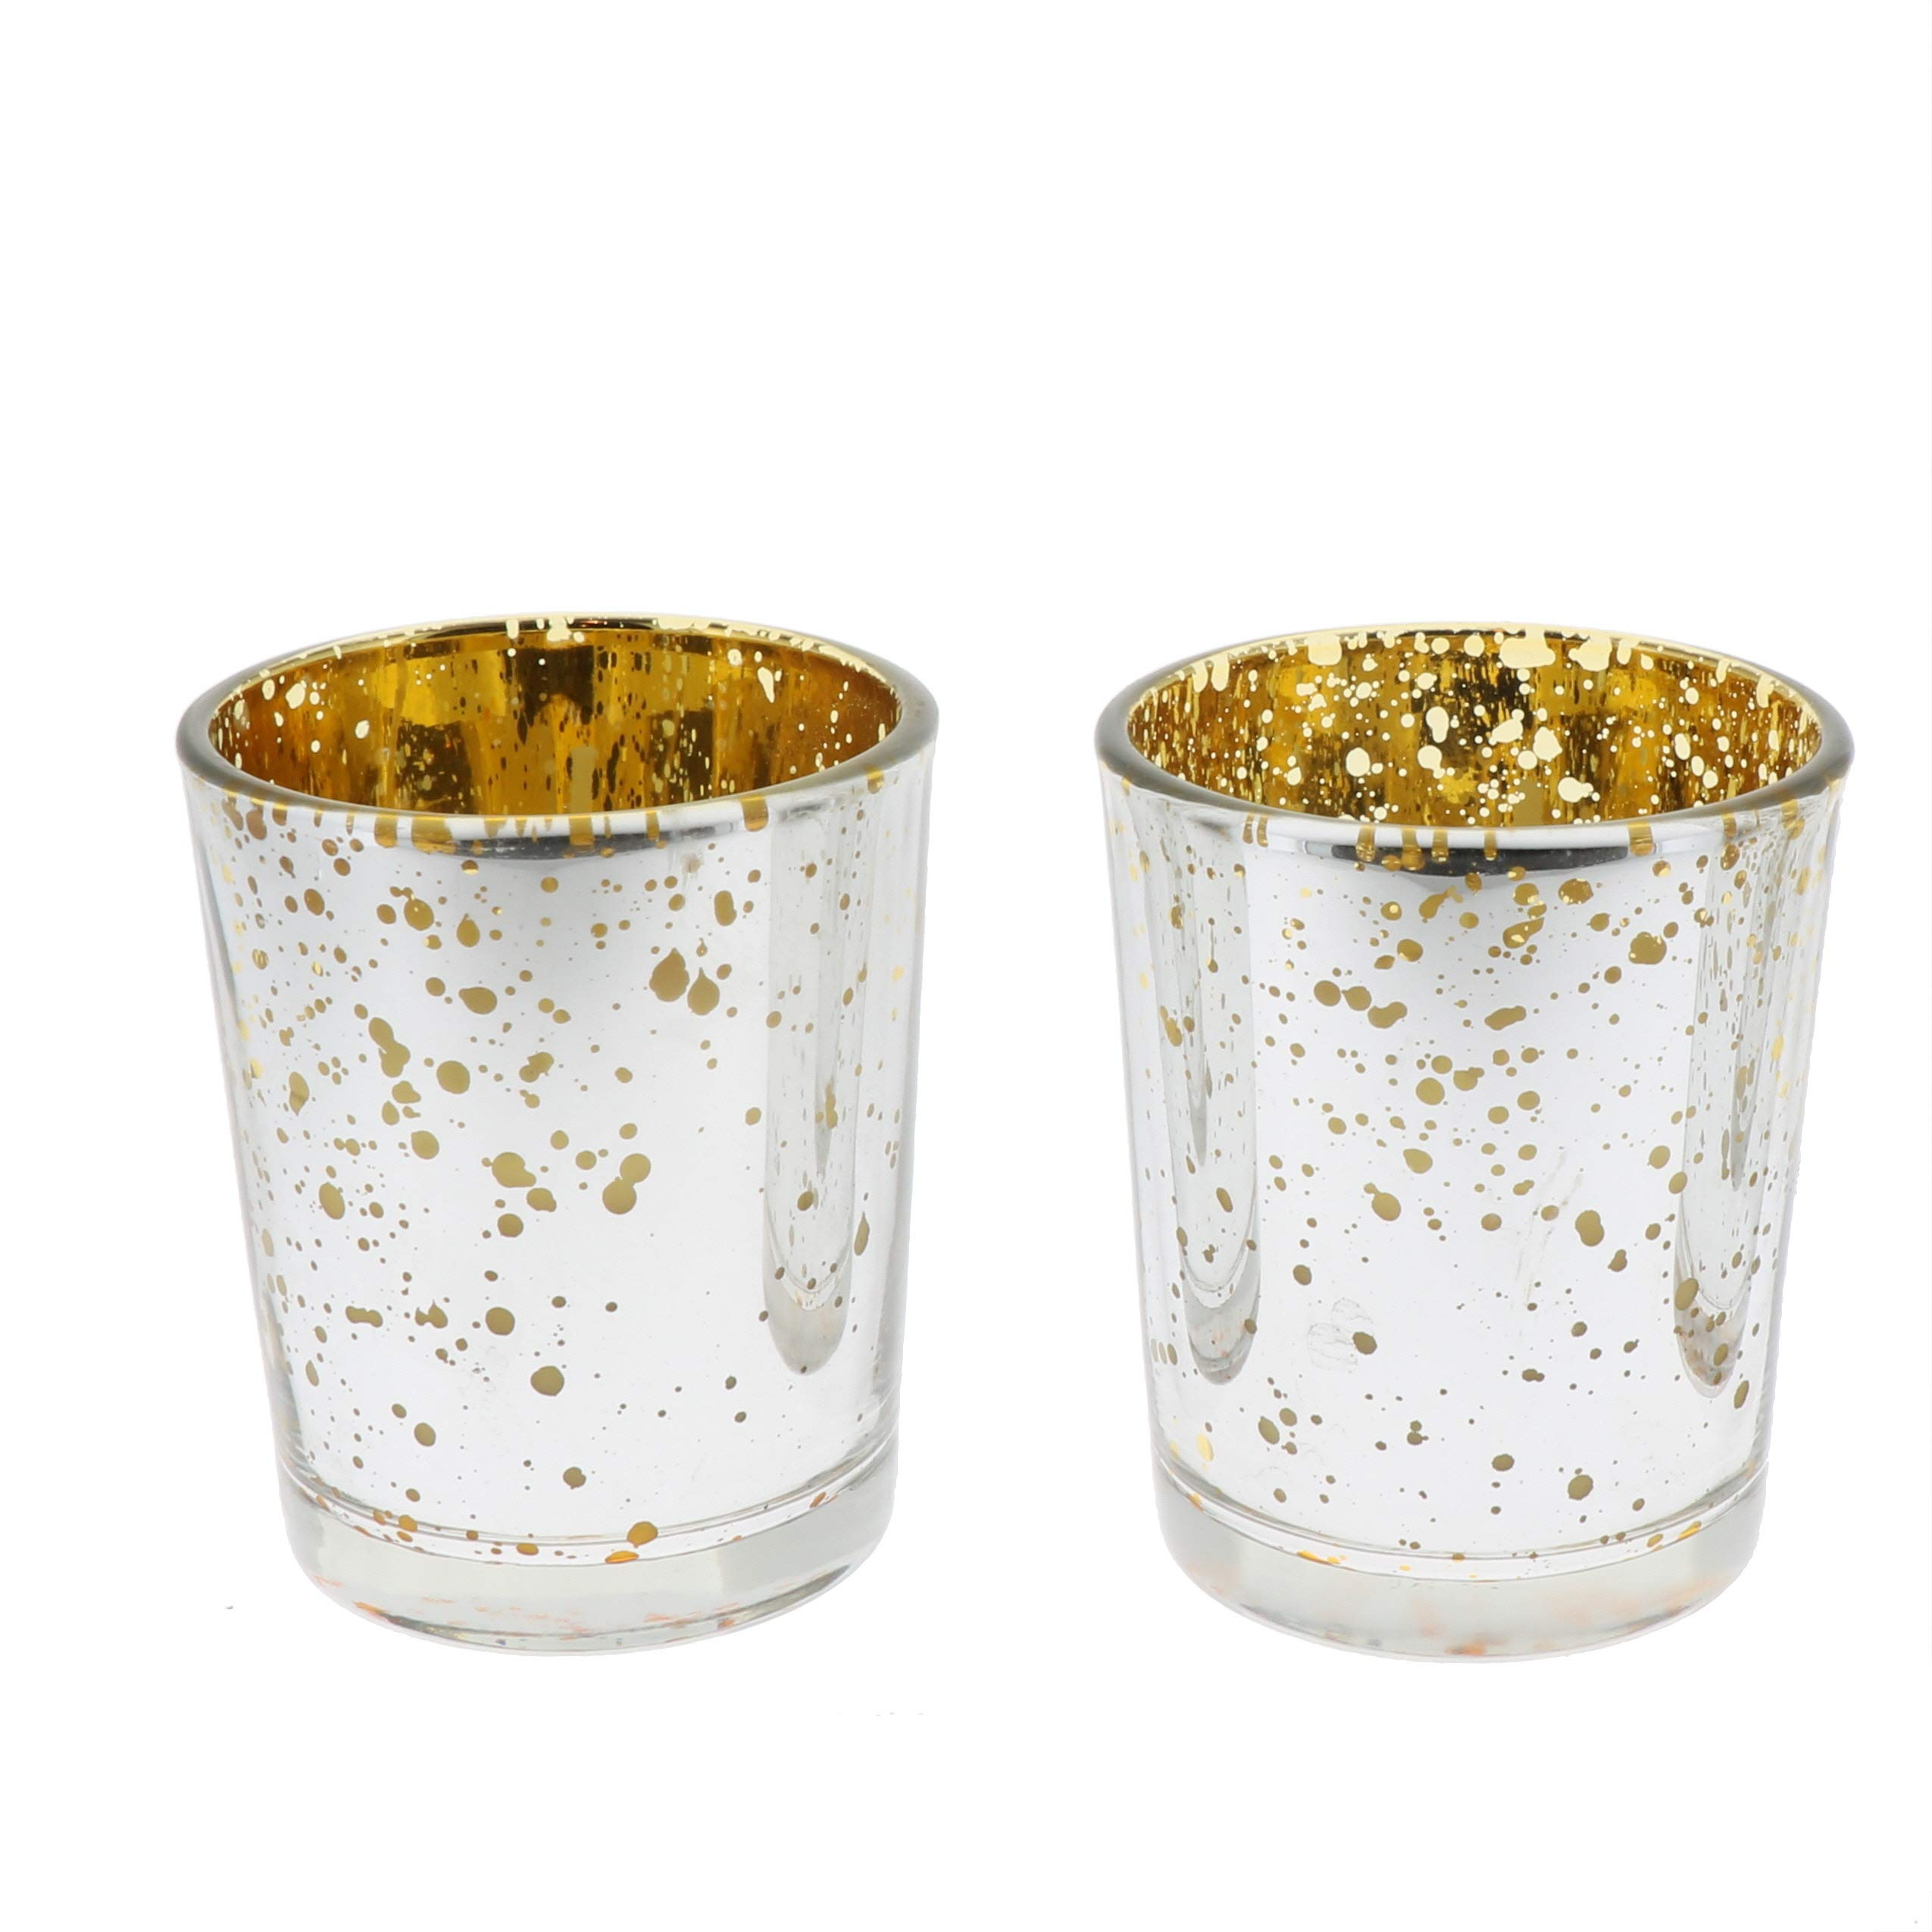 Michael Zohar Candles Mercury Glass Votive Candles   15 Hour   Silver   Filled   Set of 72 by Michael Zohar Candles